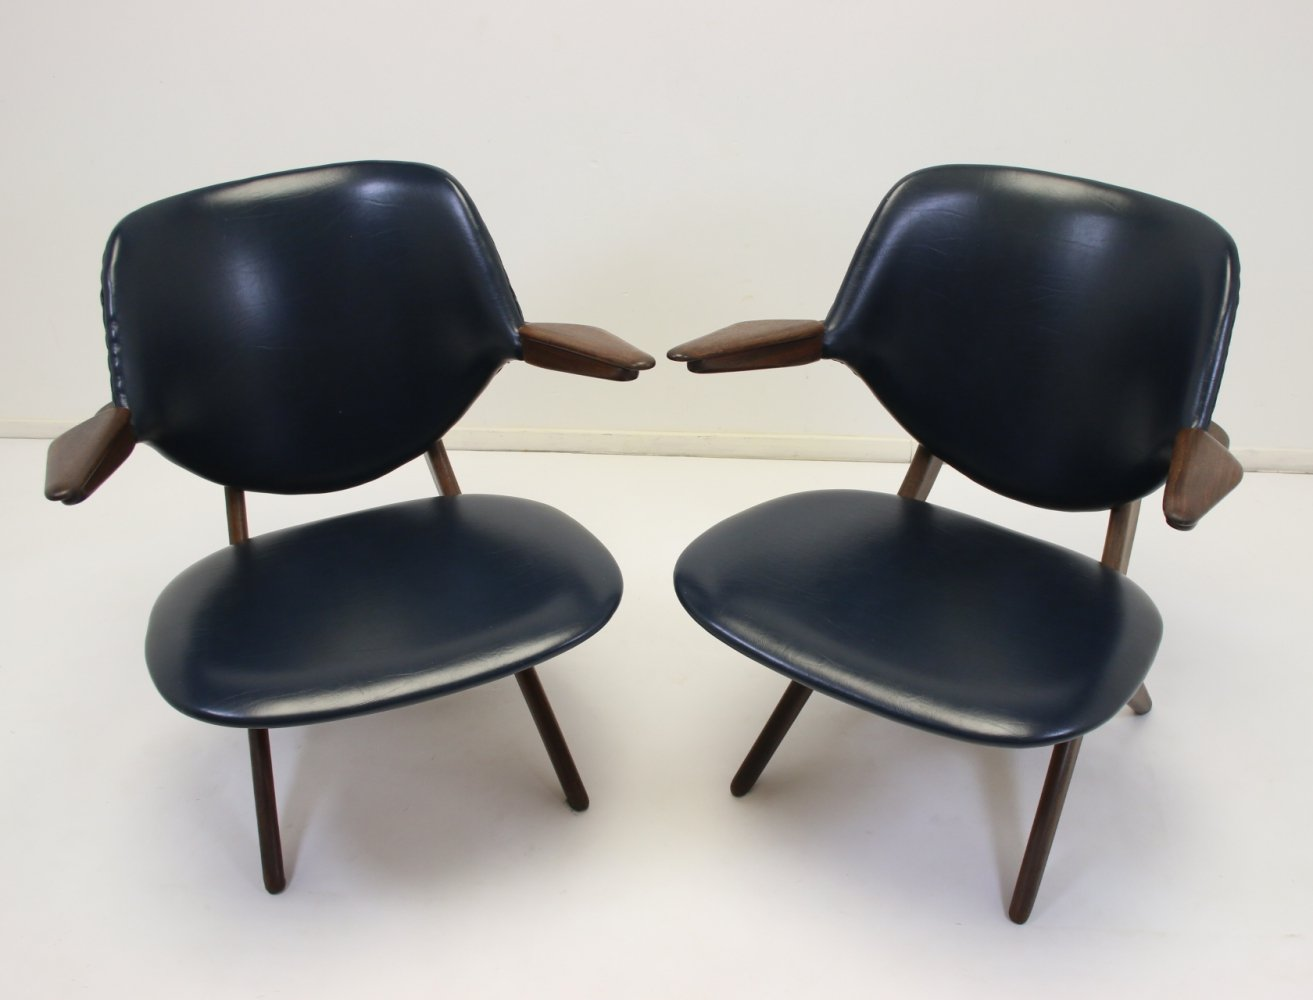 Pair of vintage Wébé Pelican armchairs by Louis van Teeffelen